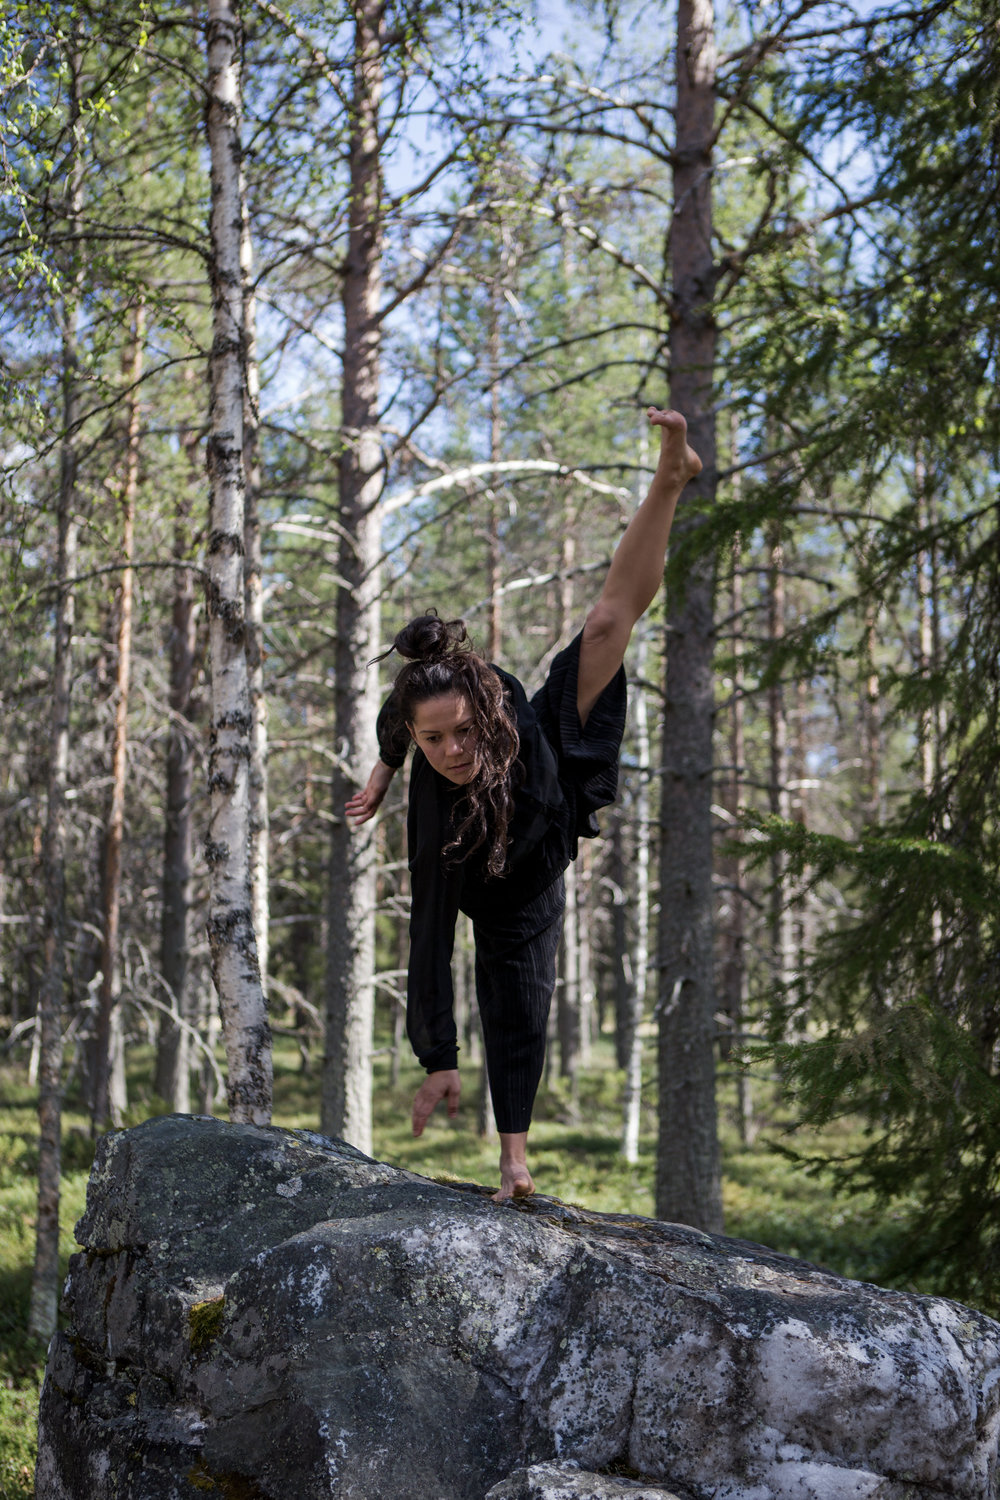 Methinee Wongtrakoon, Photo by Jouni Ihalainen